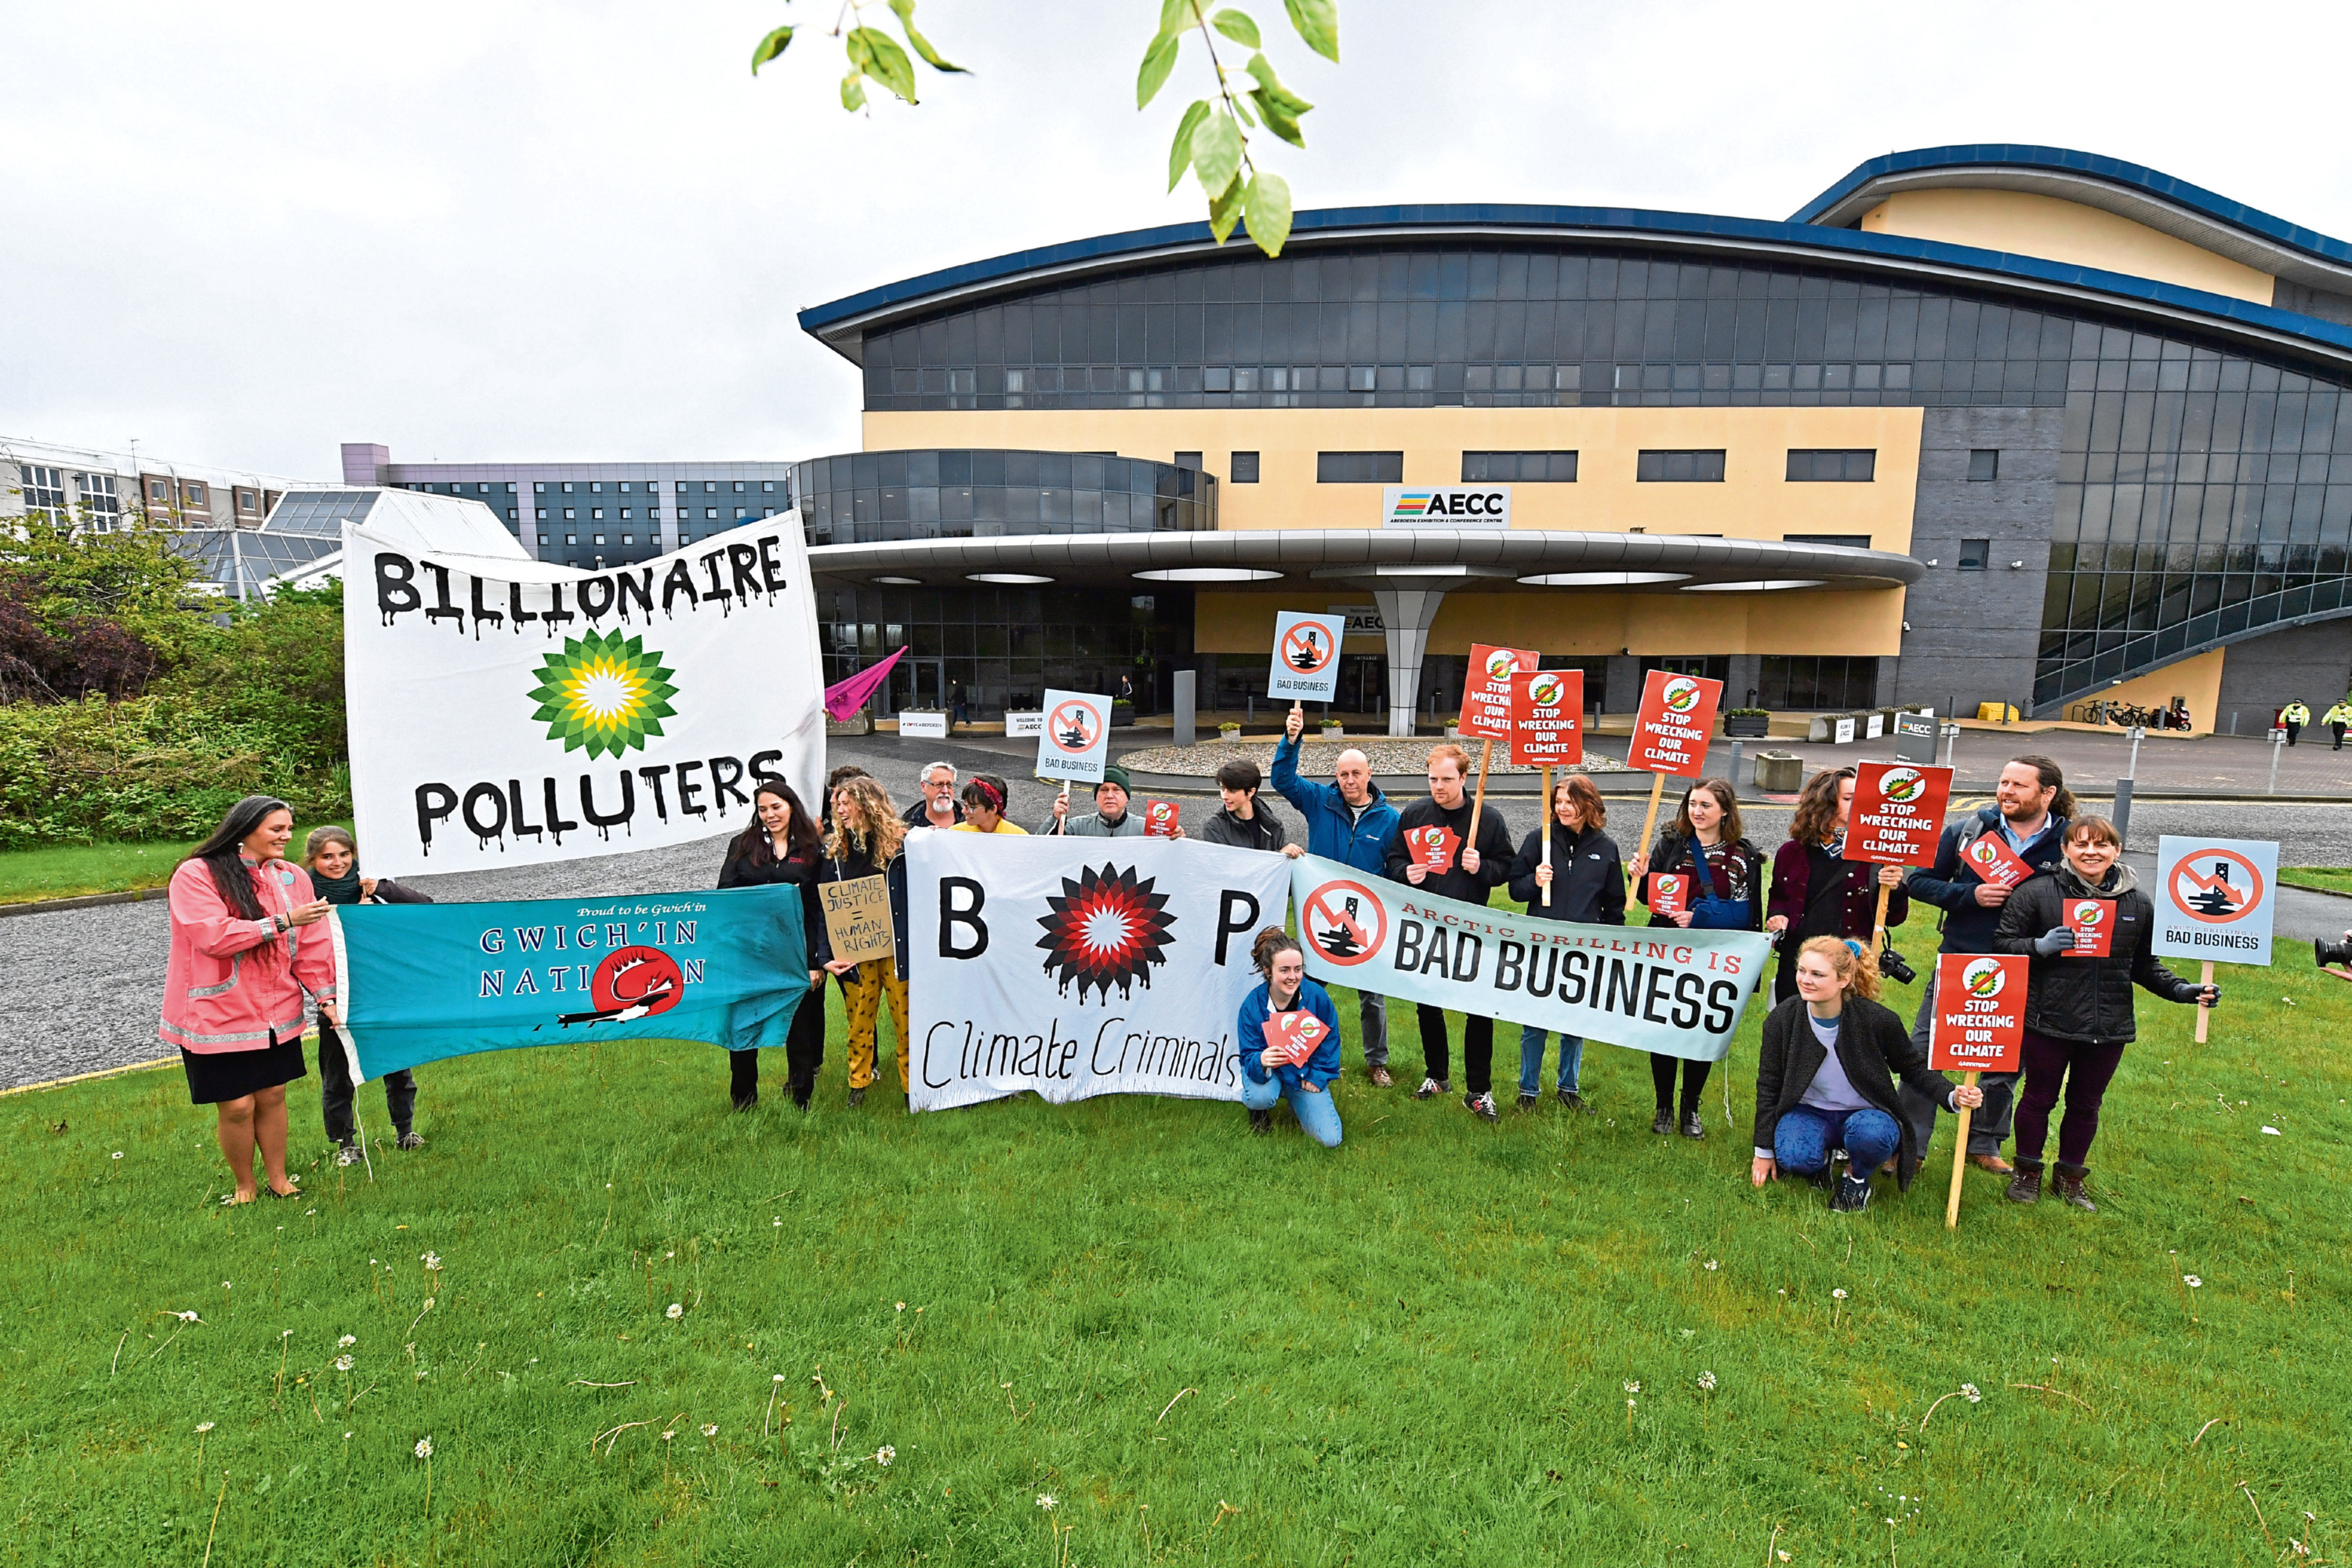 Members of Friends of the Earth gathered at BP's annual general meeting at the AECC